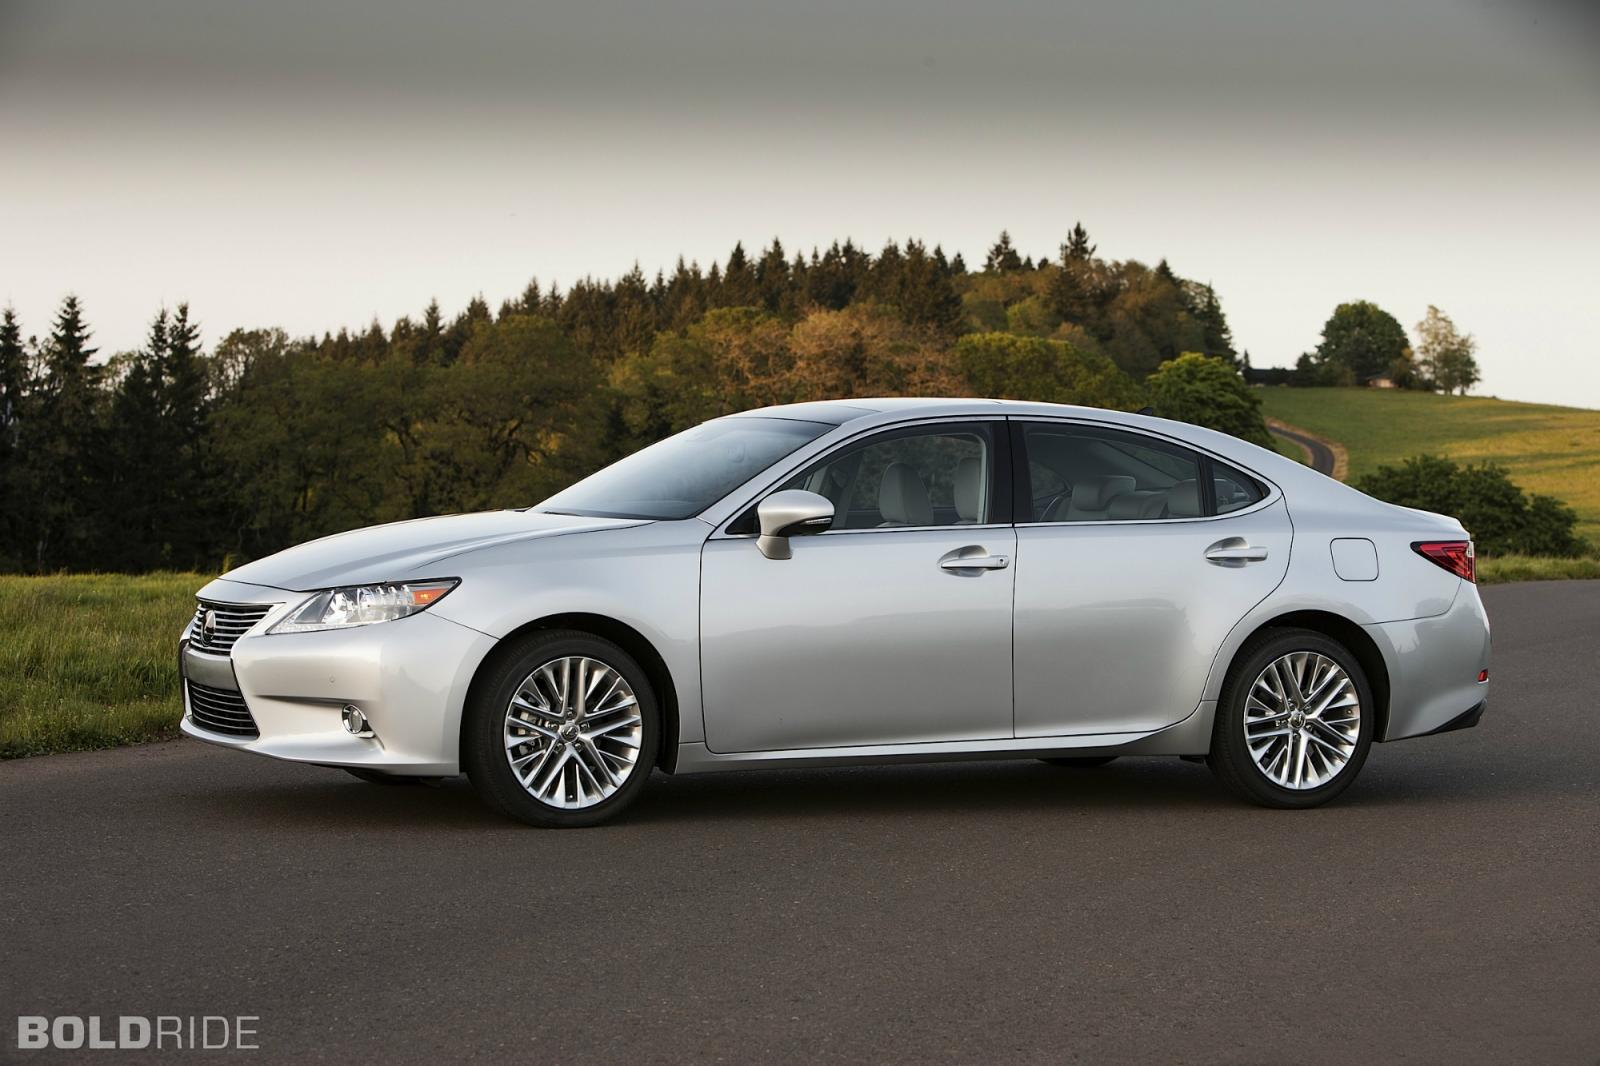 2012 lexus es 350 information and photos zombiedrive. Black Bedroom Furniture Sets. Home Design Ideas